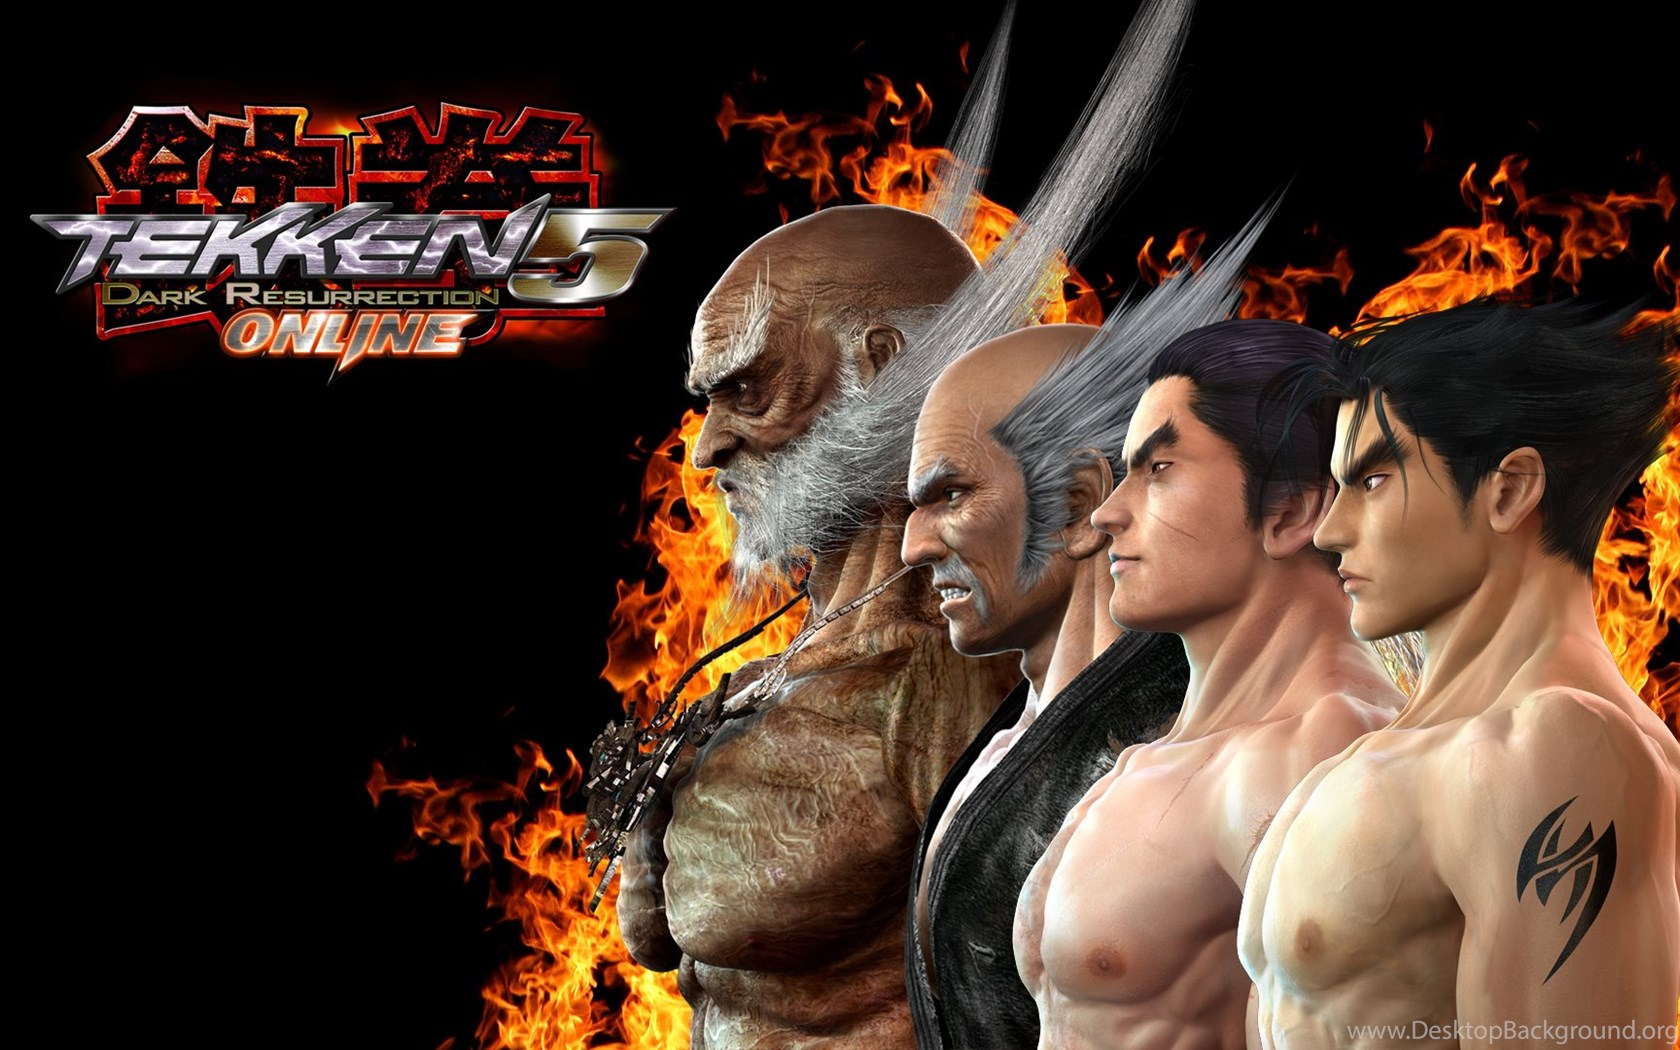 Download Tekken Lili Heihachi Jin Jinpachi Kazuya Mishima Free Desktop Background